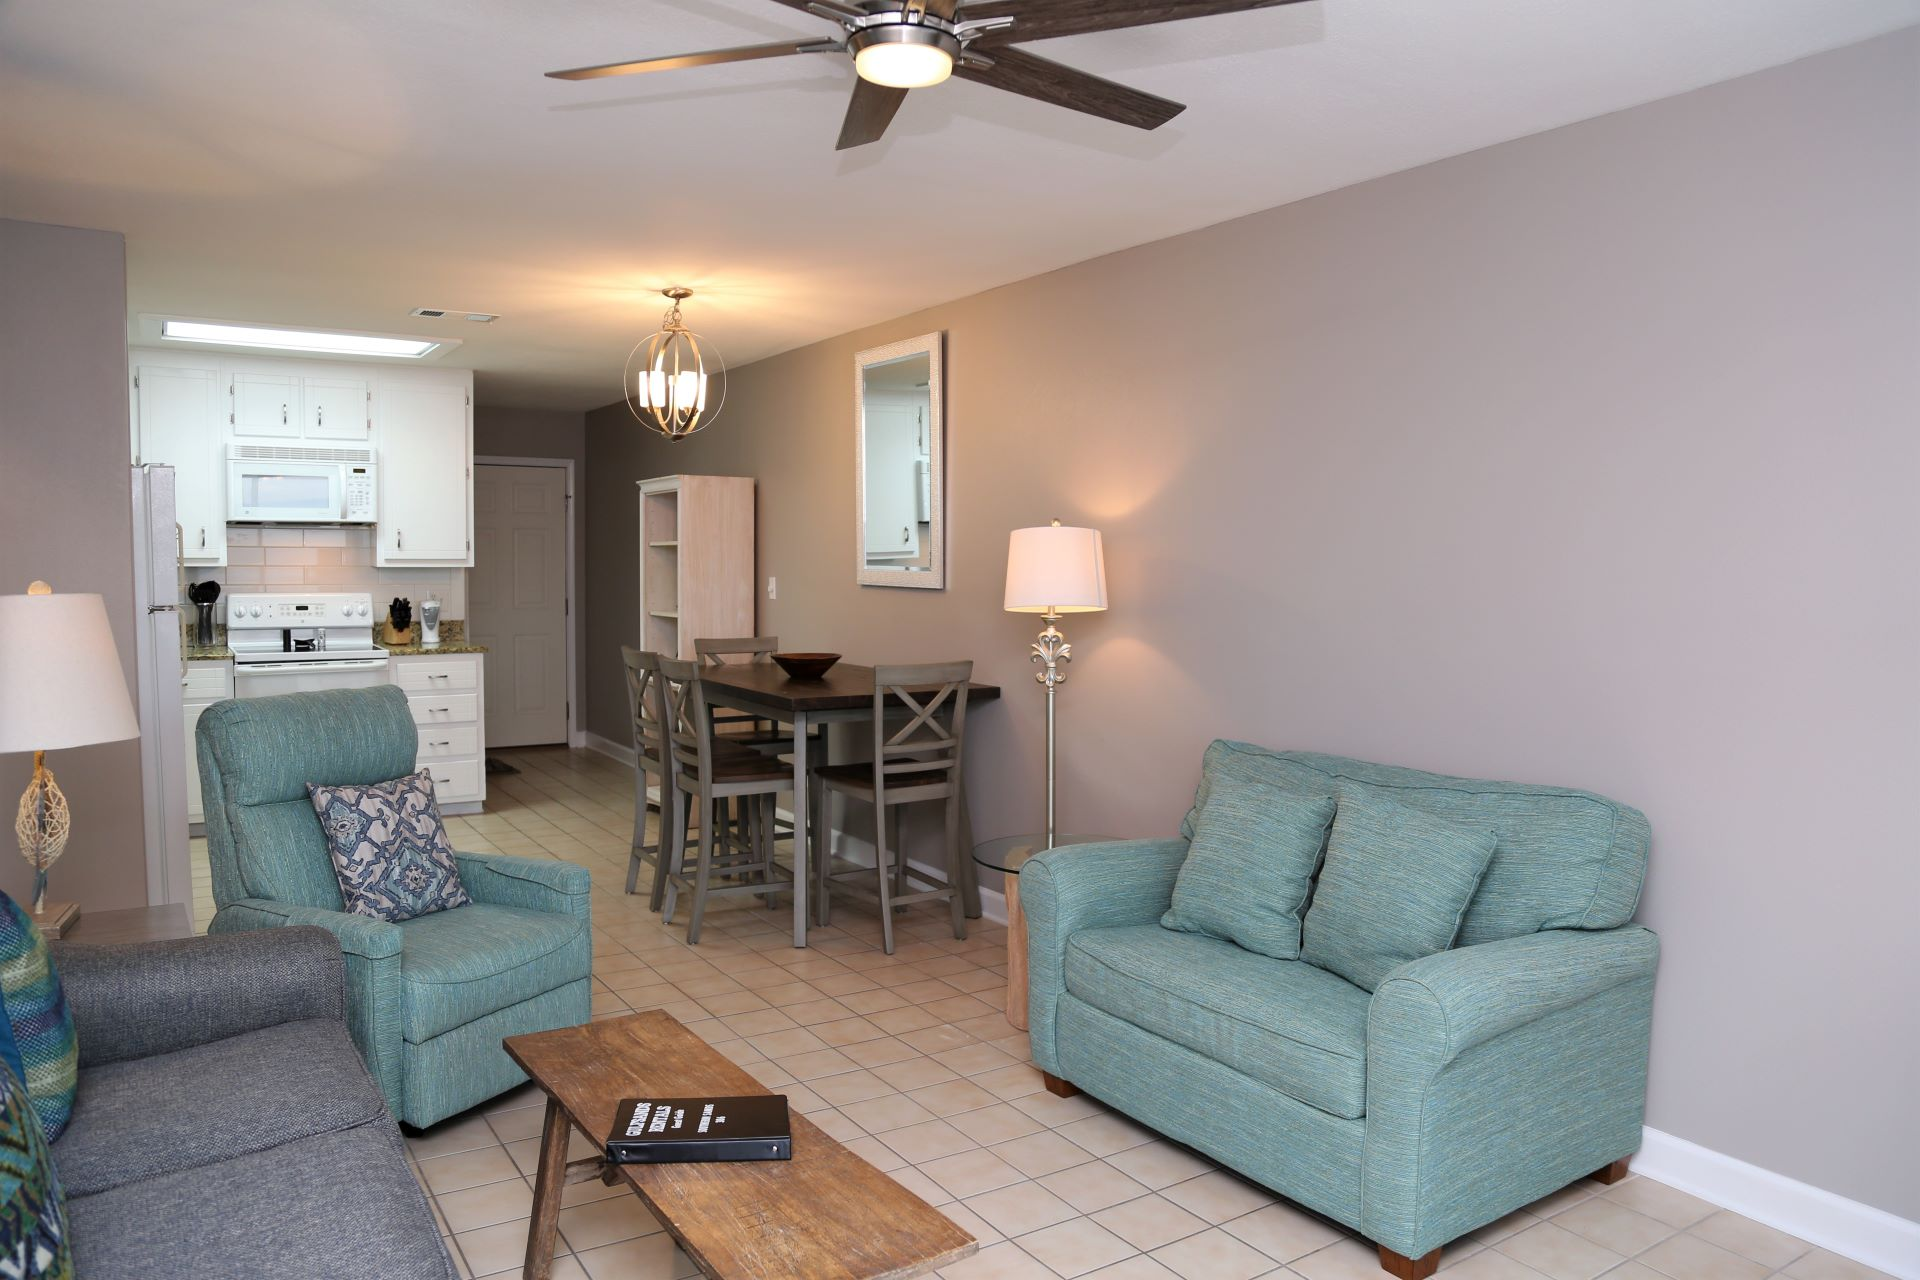 The updated living room includes a large, Smart TV, ample se